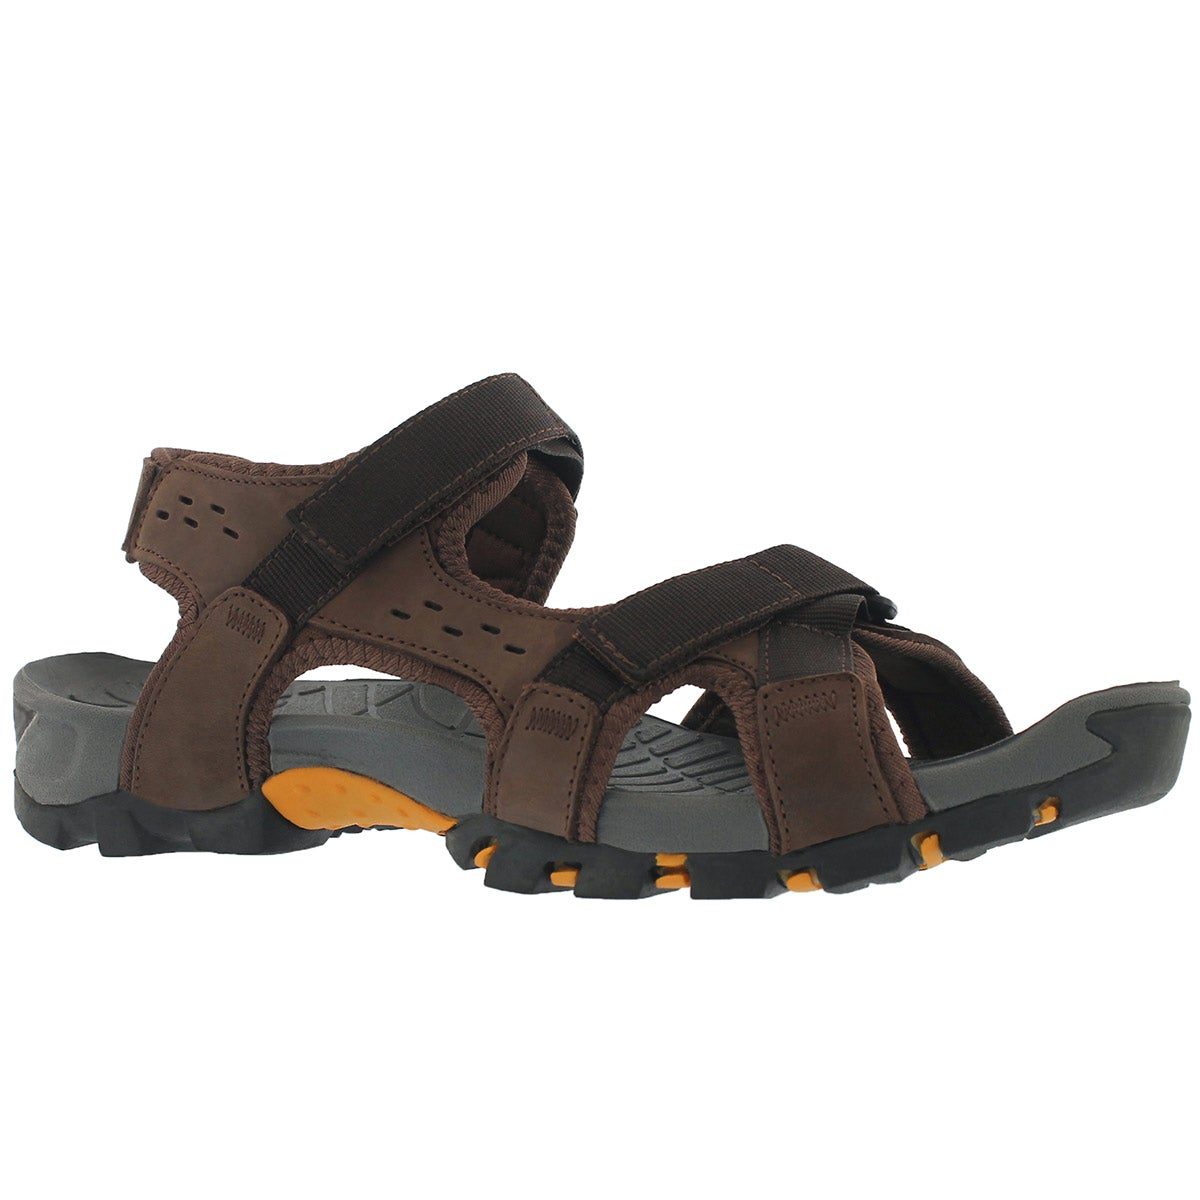 Men's KEANU brown 3 strap sport sandals